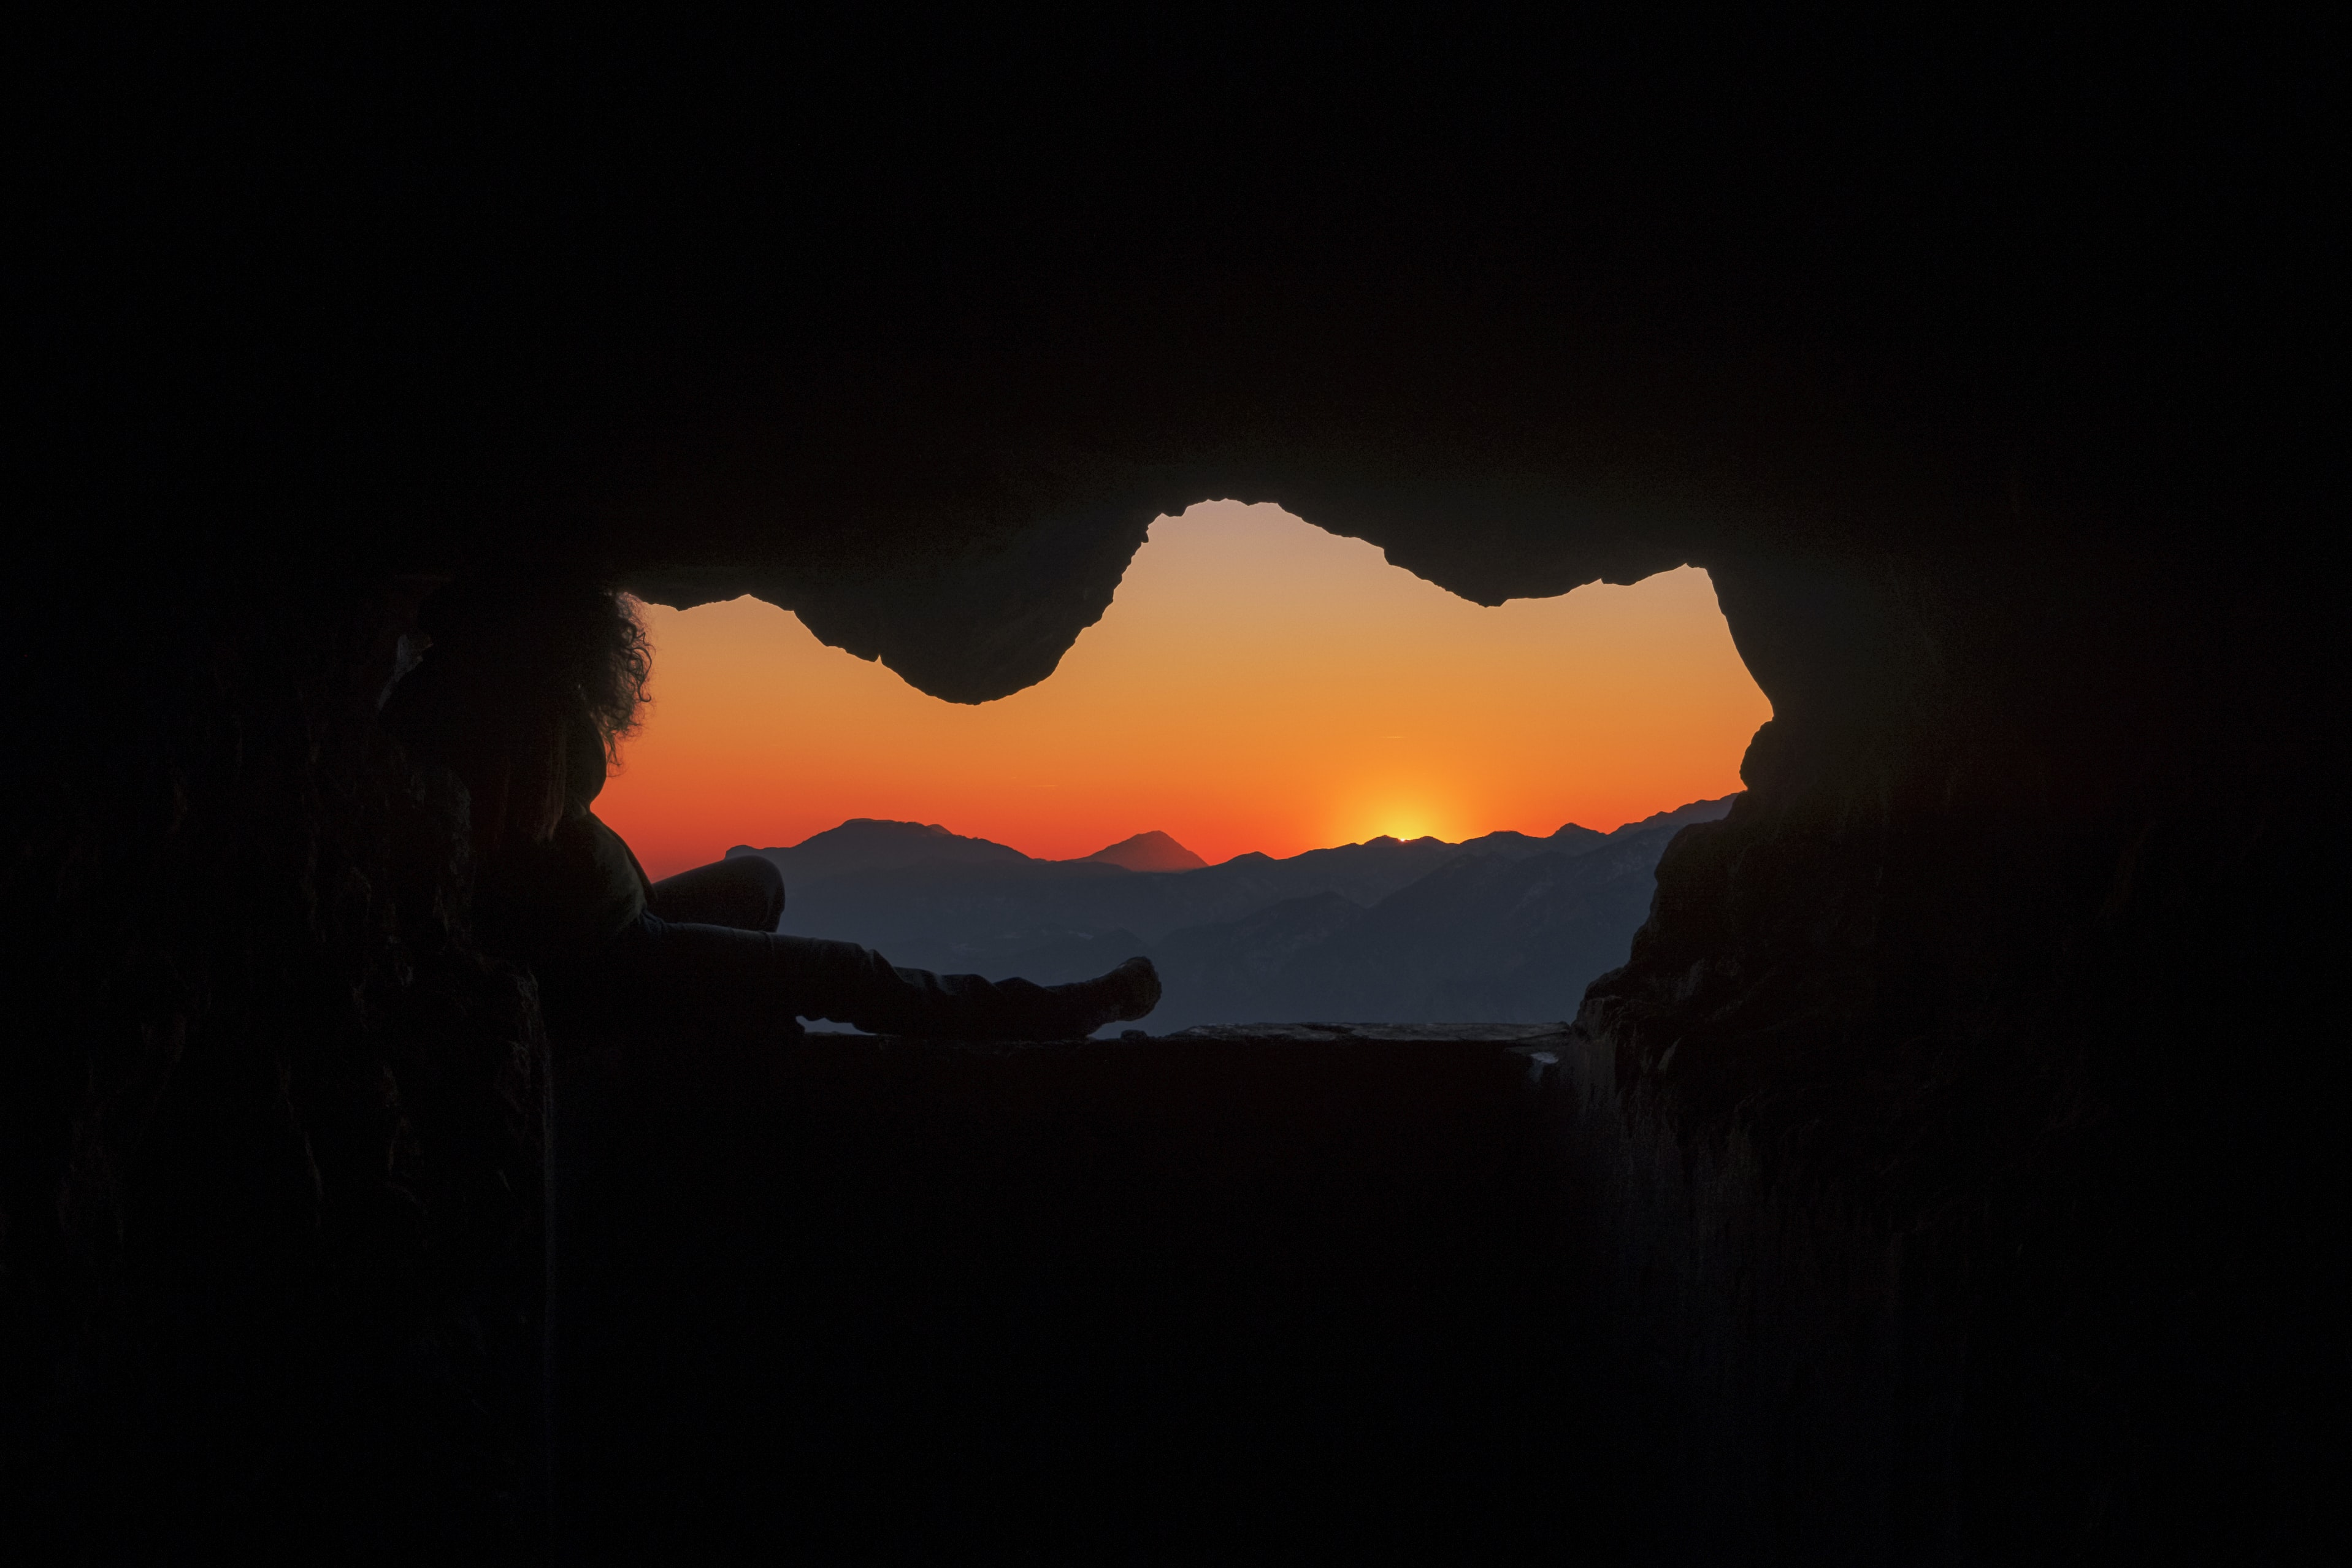 silhouette of person sitting on cave during golden hour